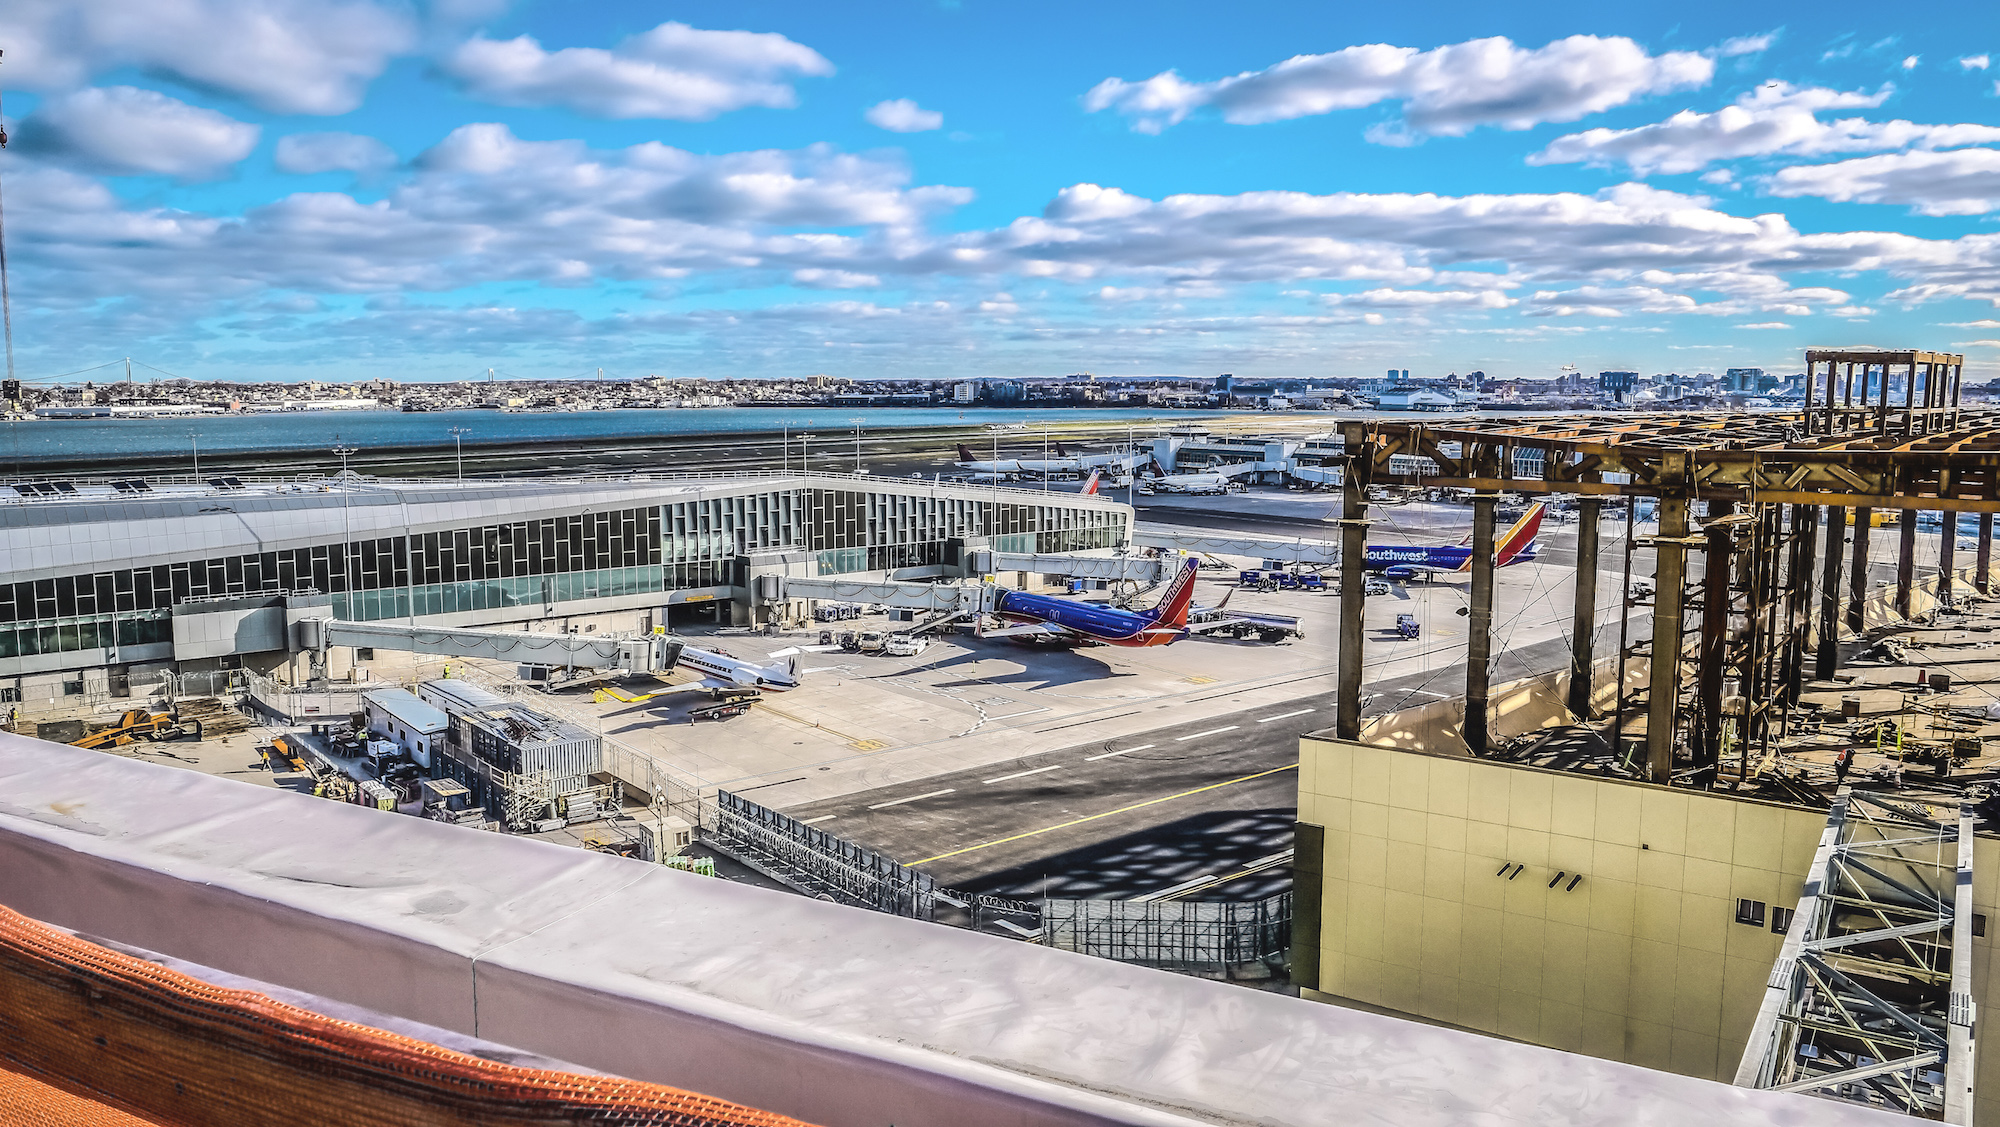 Anchor Designs for NYC's LaGuardia Airport